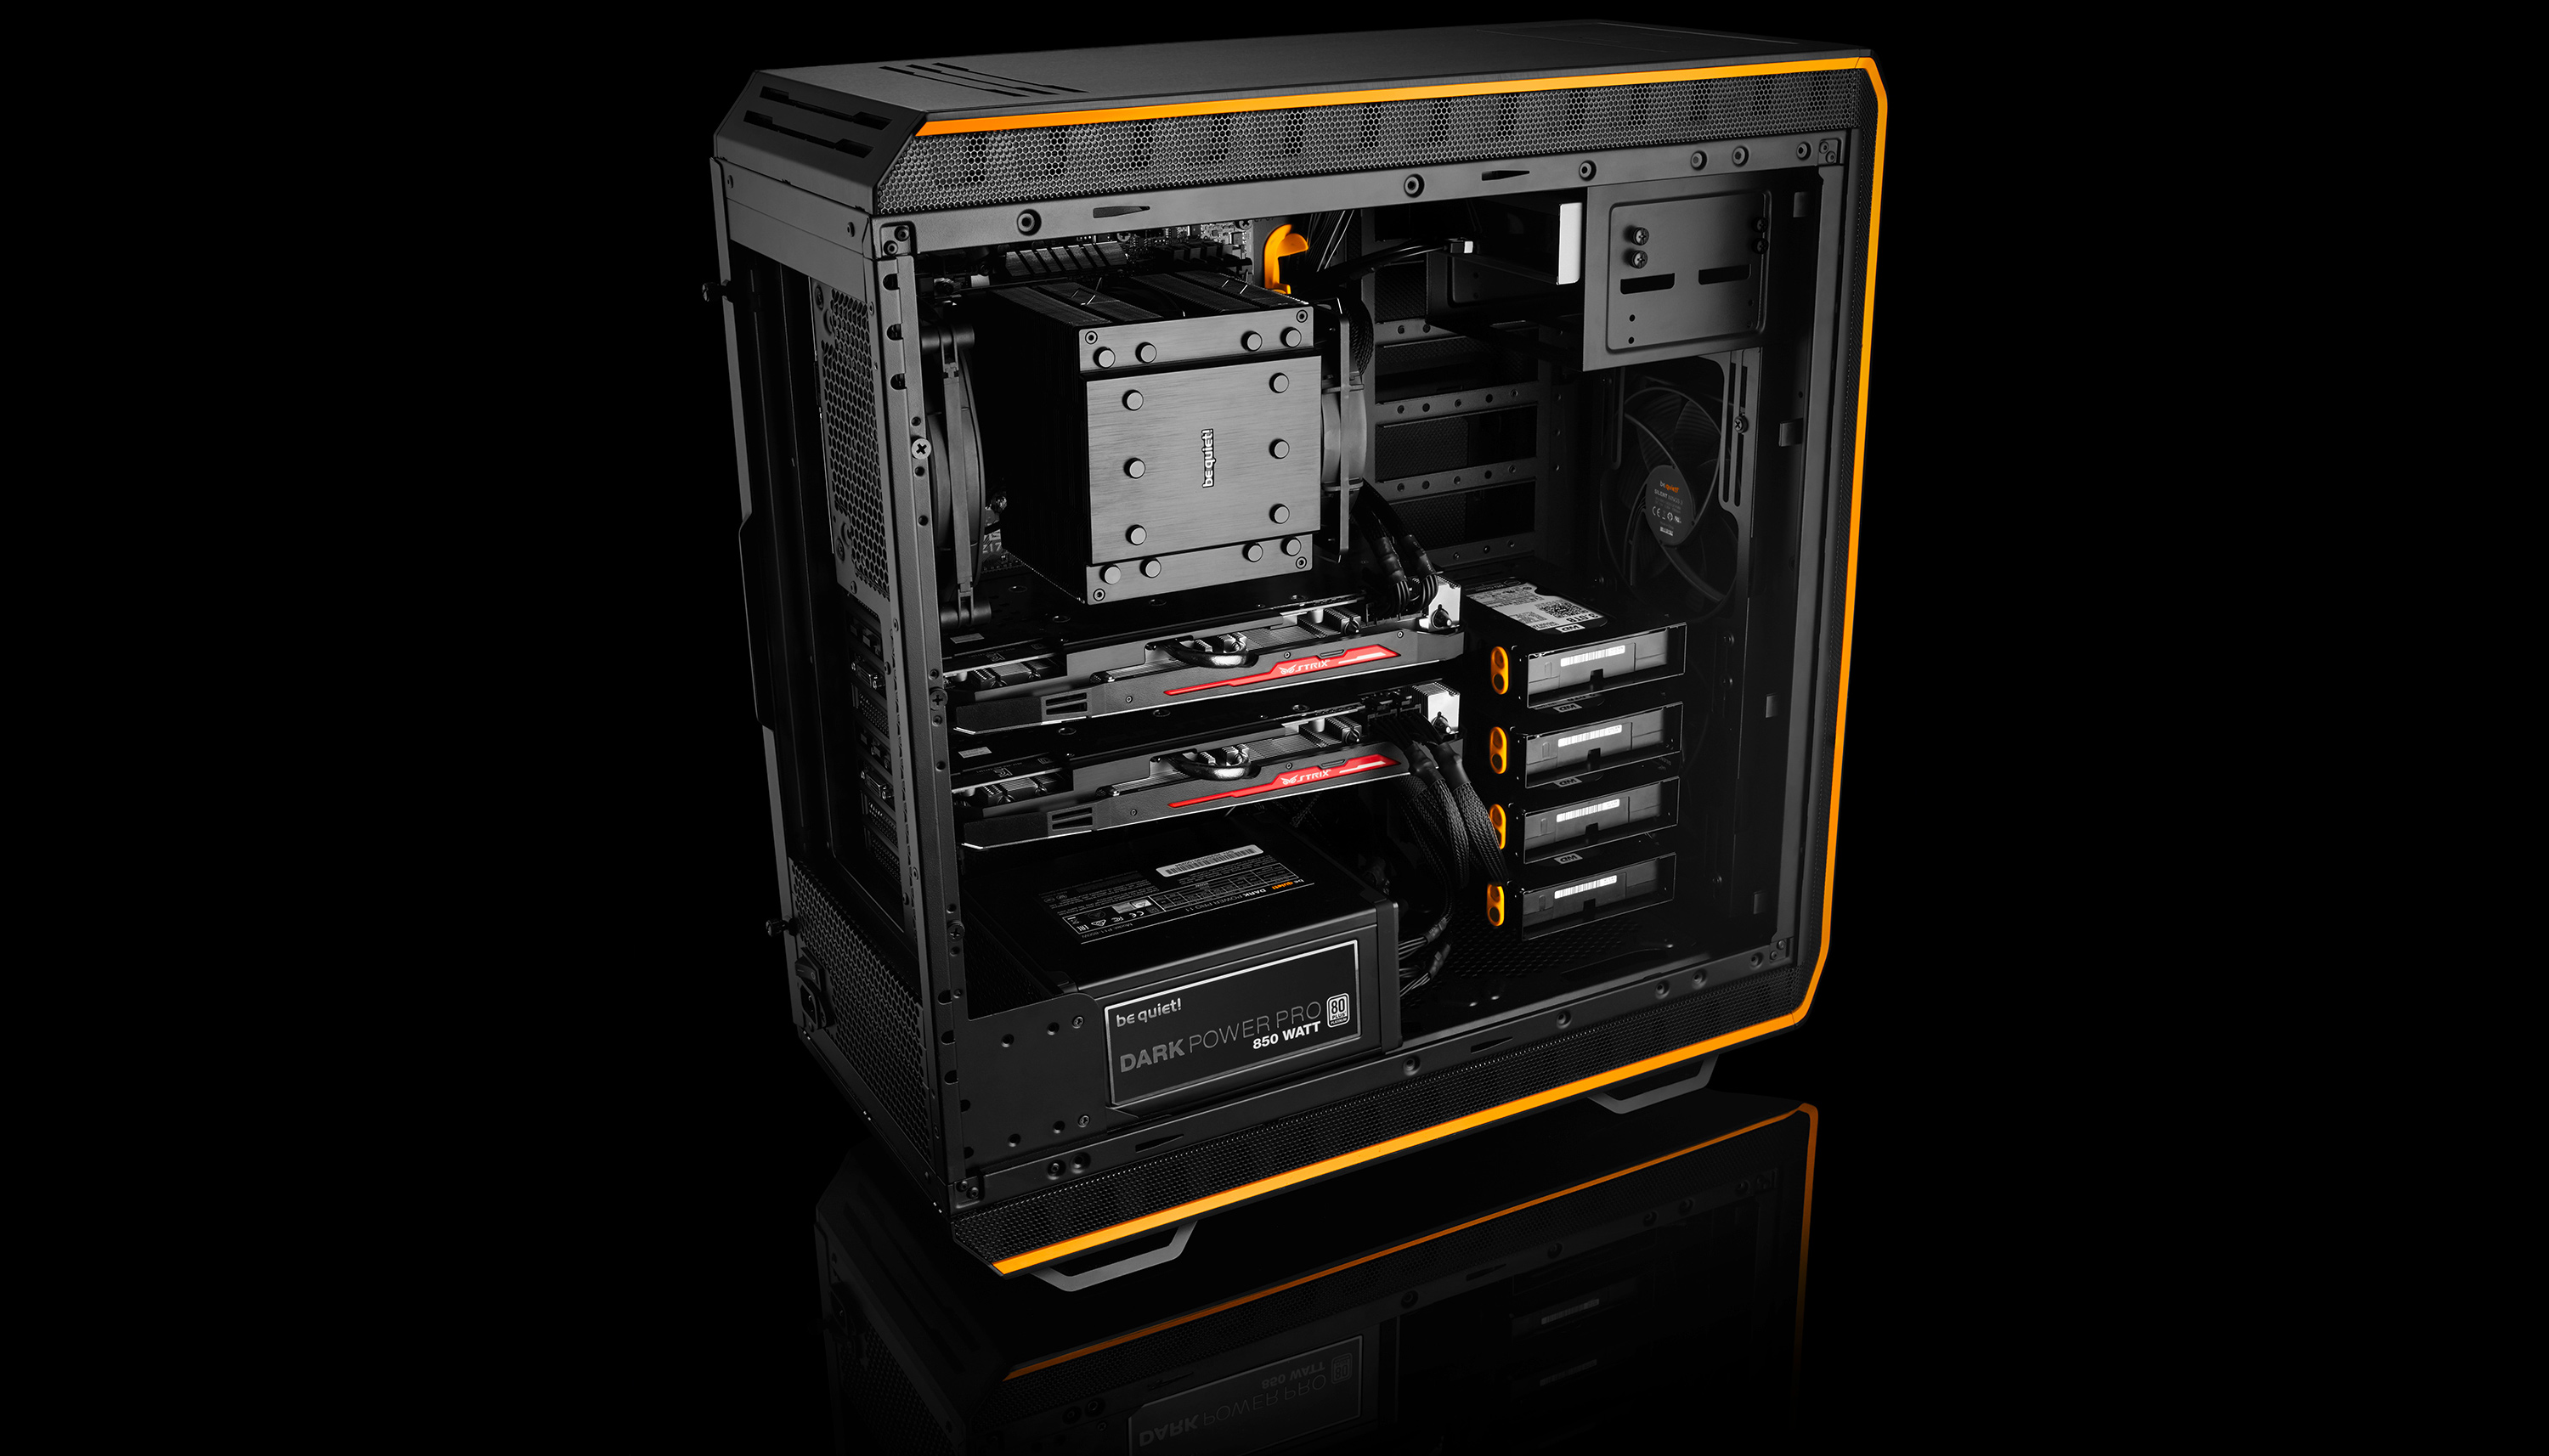 be quiet introduces new flagship dark base 900 chassis